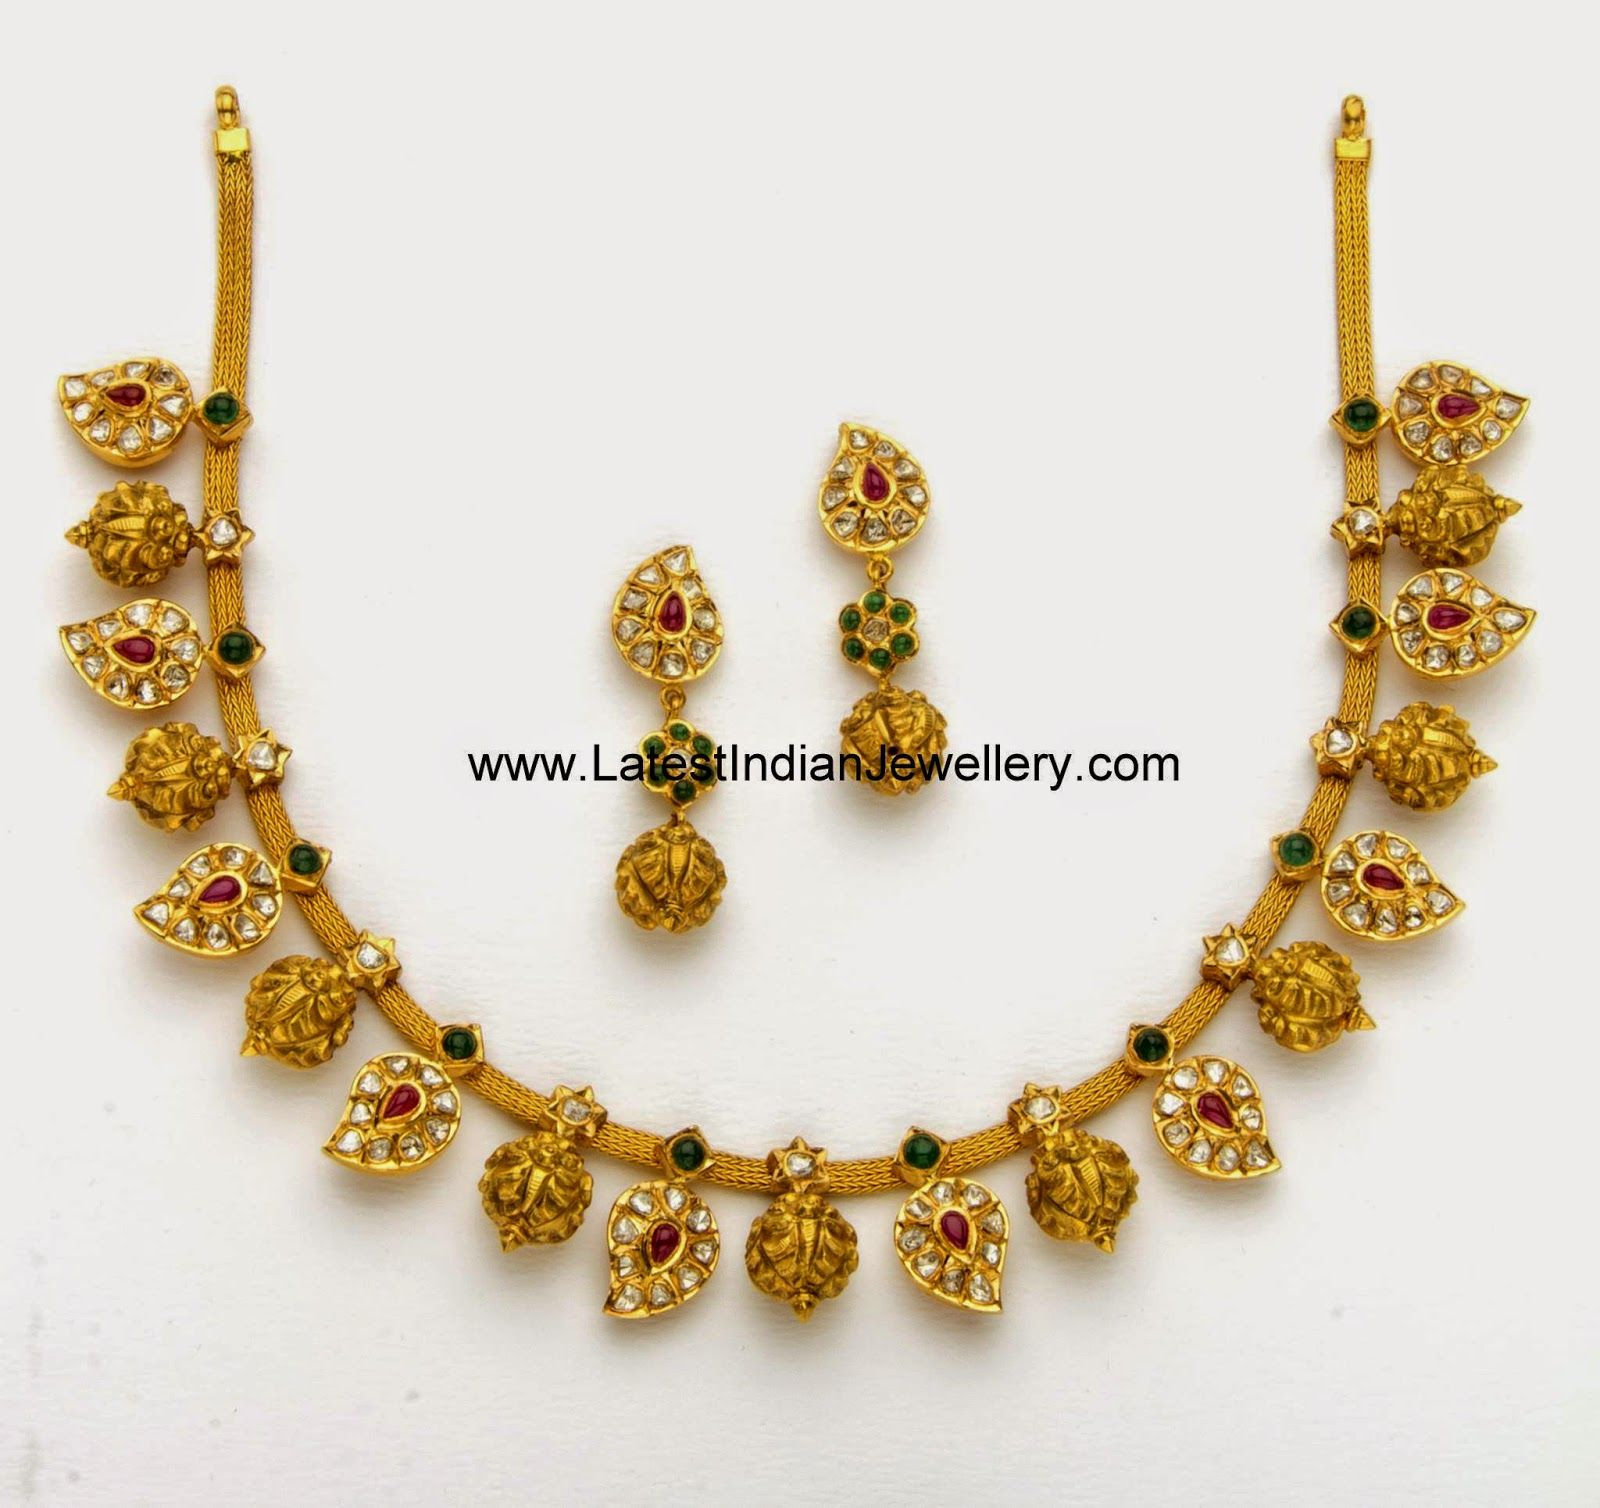 Mango Design Nakshi Balls Mango Design Gold Necklace Projects To Try